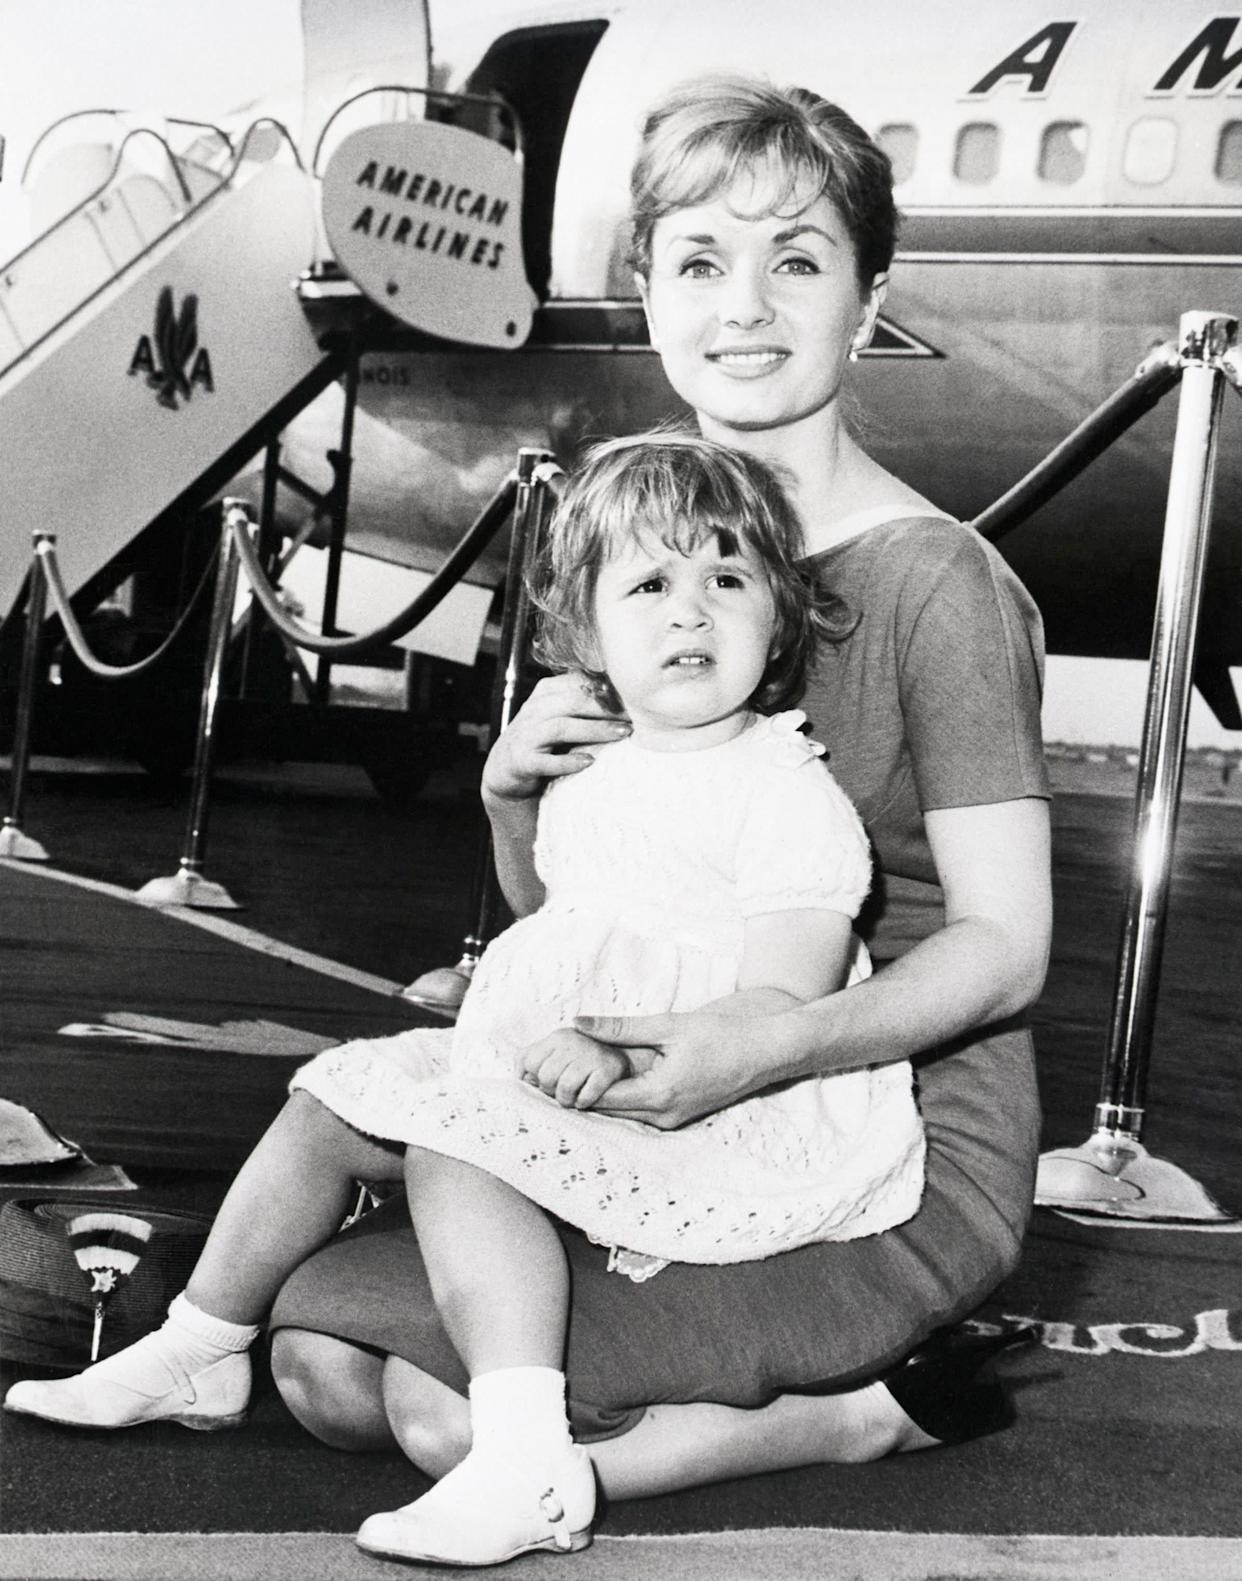 The mother and daughter prepare to board an American Airlines flight at LaGuardia Airport in June 1959.